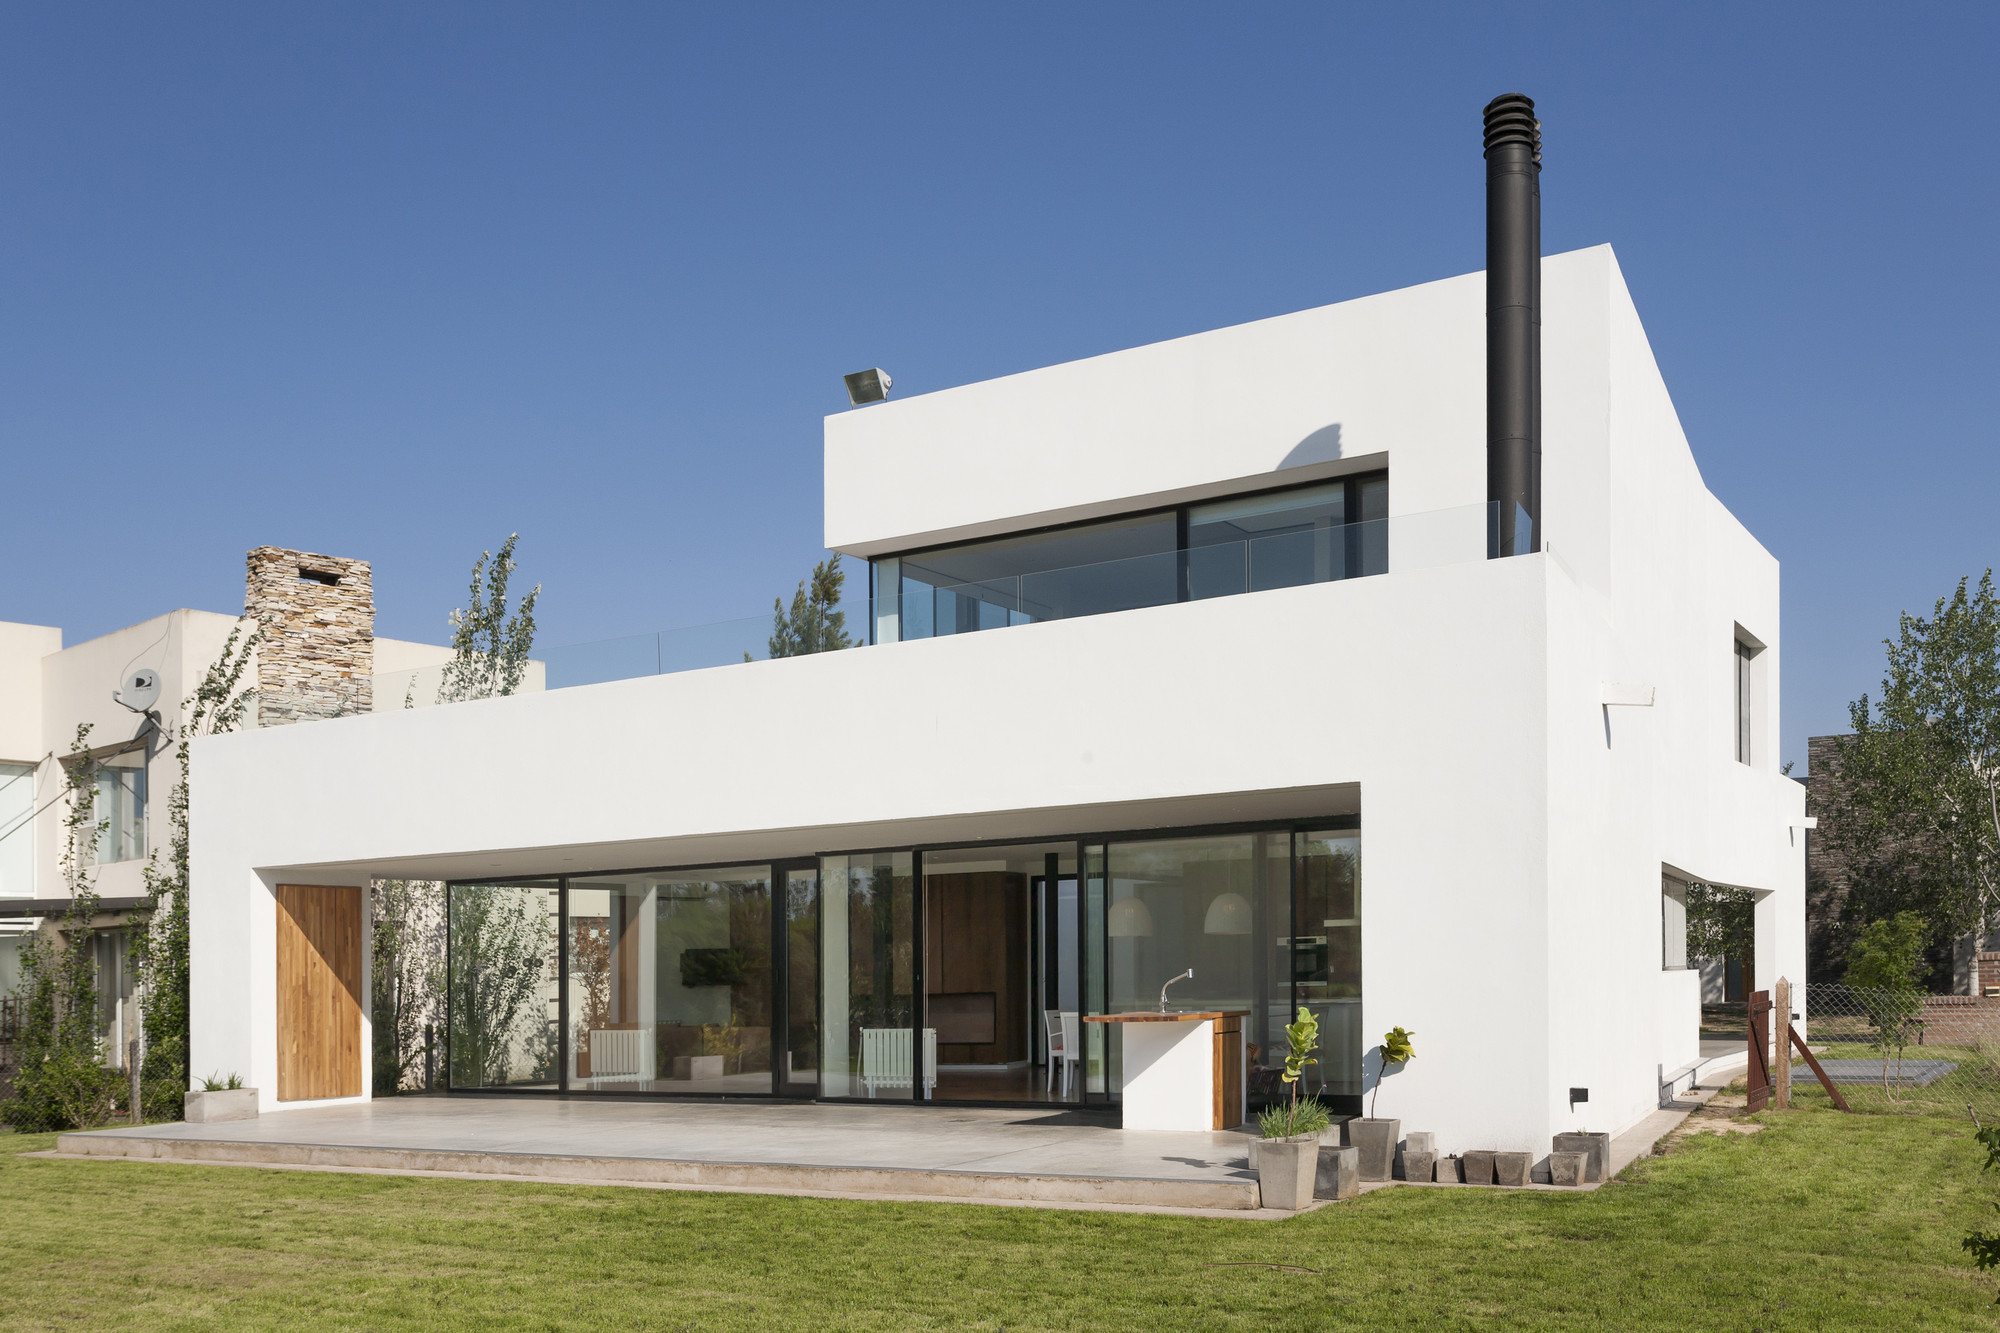 Galer a de casa mc vismaracorsi arquitectos 16 for 16 wrestlers and their huge homes